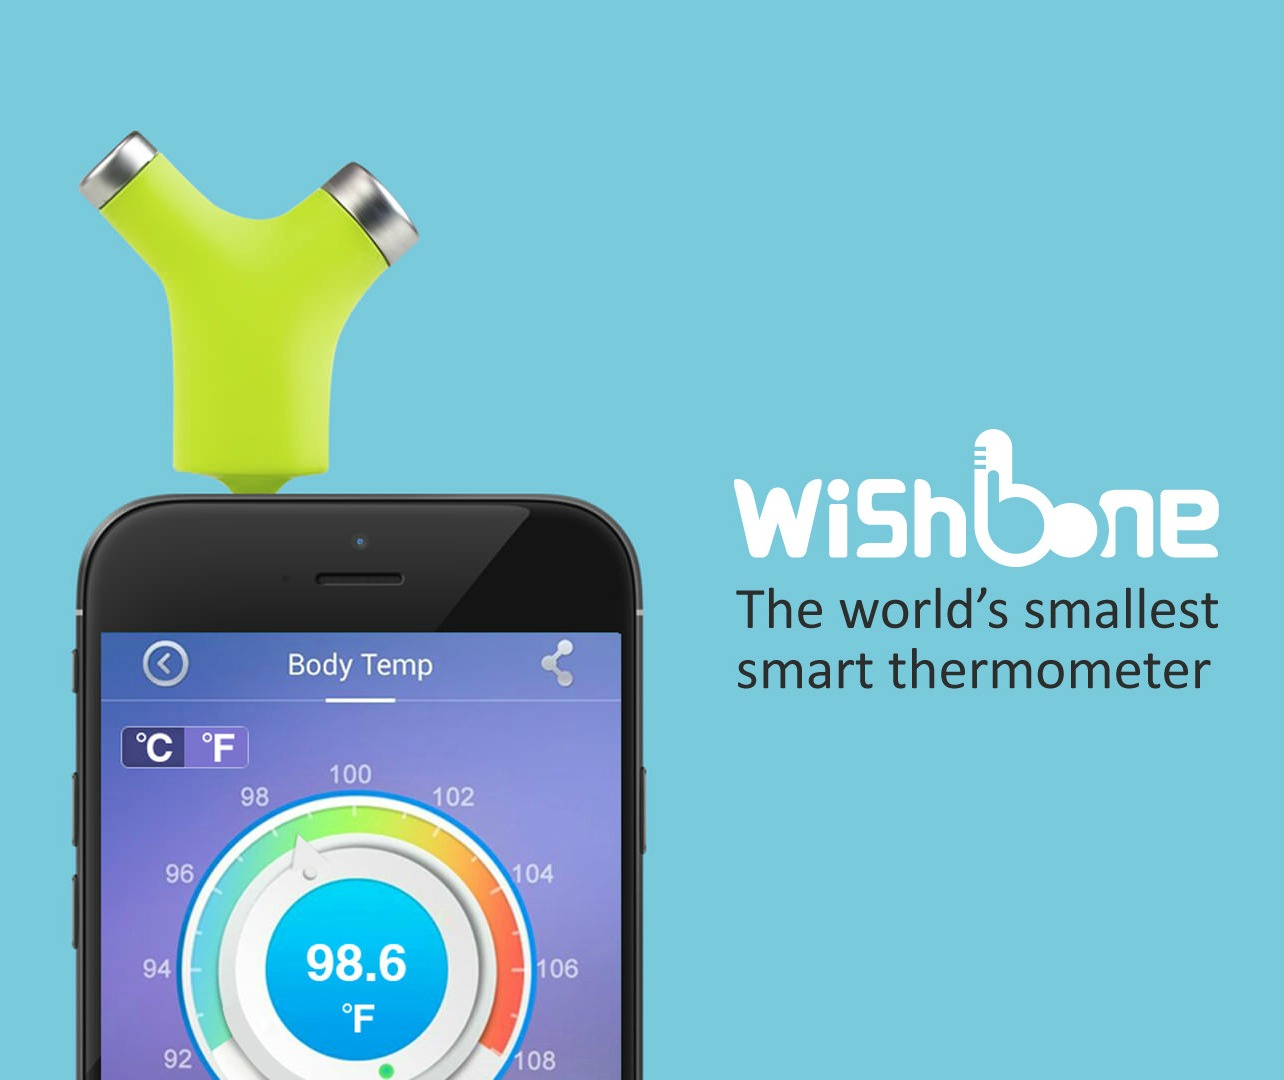 Wishbone Turns your Phone into a Baby Thermometer - GetdatGadget